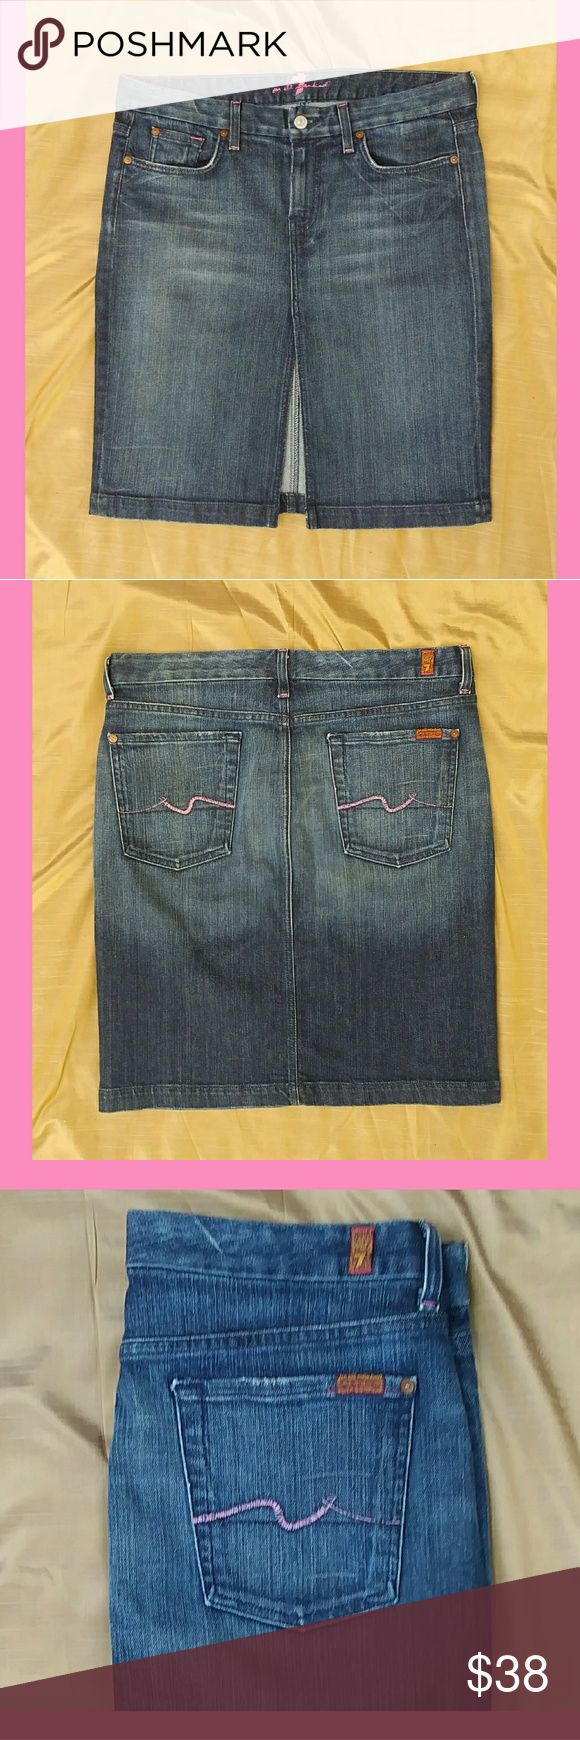 Jean skirt by 7 For All Mankind Super flattering pencil Style denim skirt with pink stitching and Factory distressing. Disclosure I am the second owner however while with me always washed on gentle laid flat to dry in excellent condition 7 For All Mankind Skirts Pencil